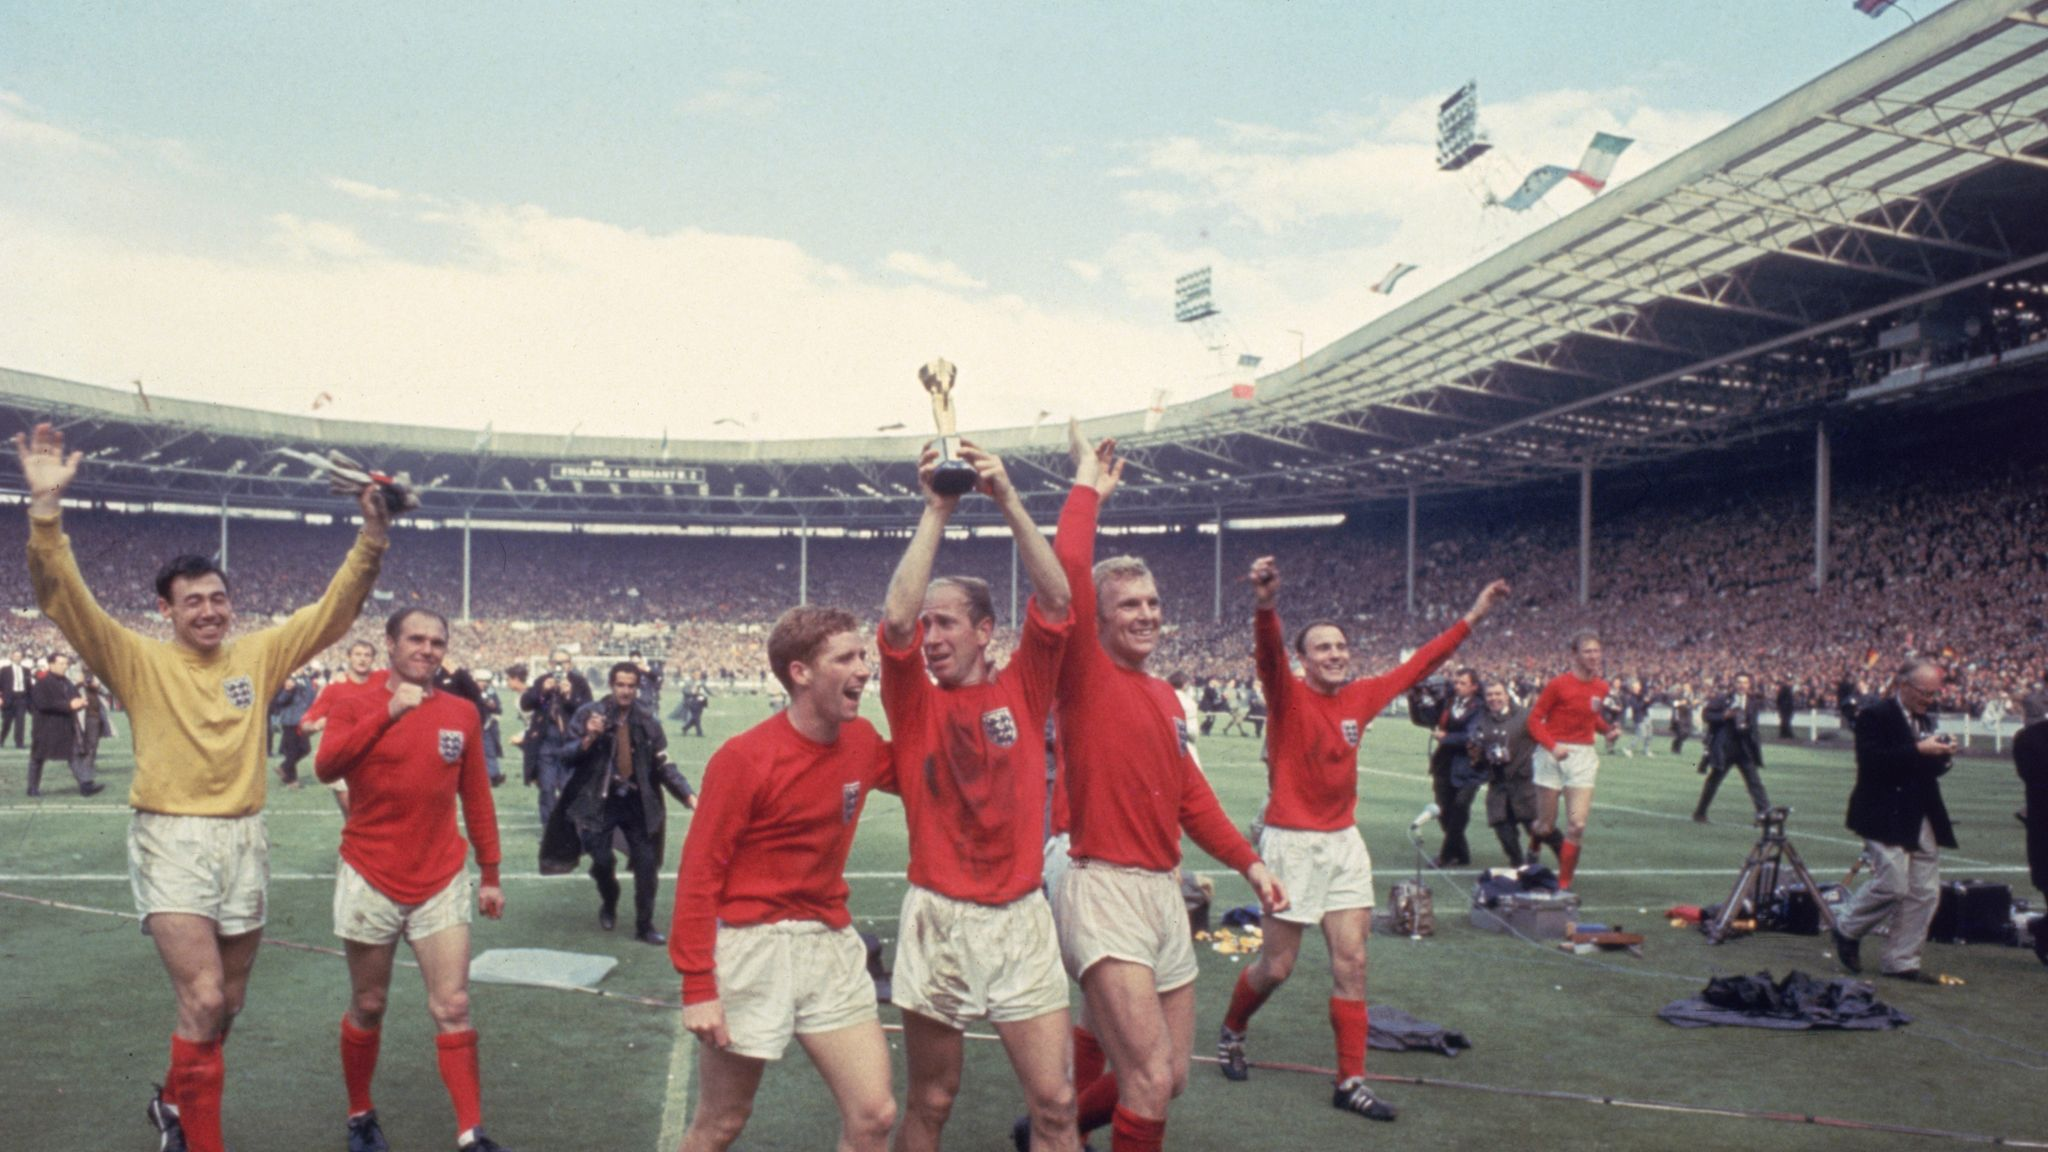 https://e1.365dm.com/16/01/2048x1152/alan-ball-england-bobby-charlton-world-cup-final-west-germany_3395703.jpg